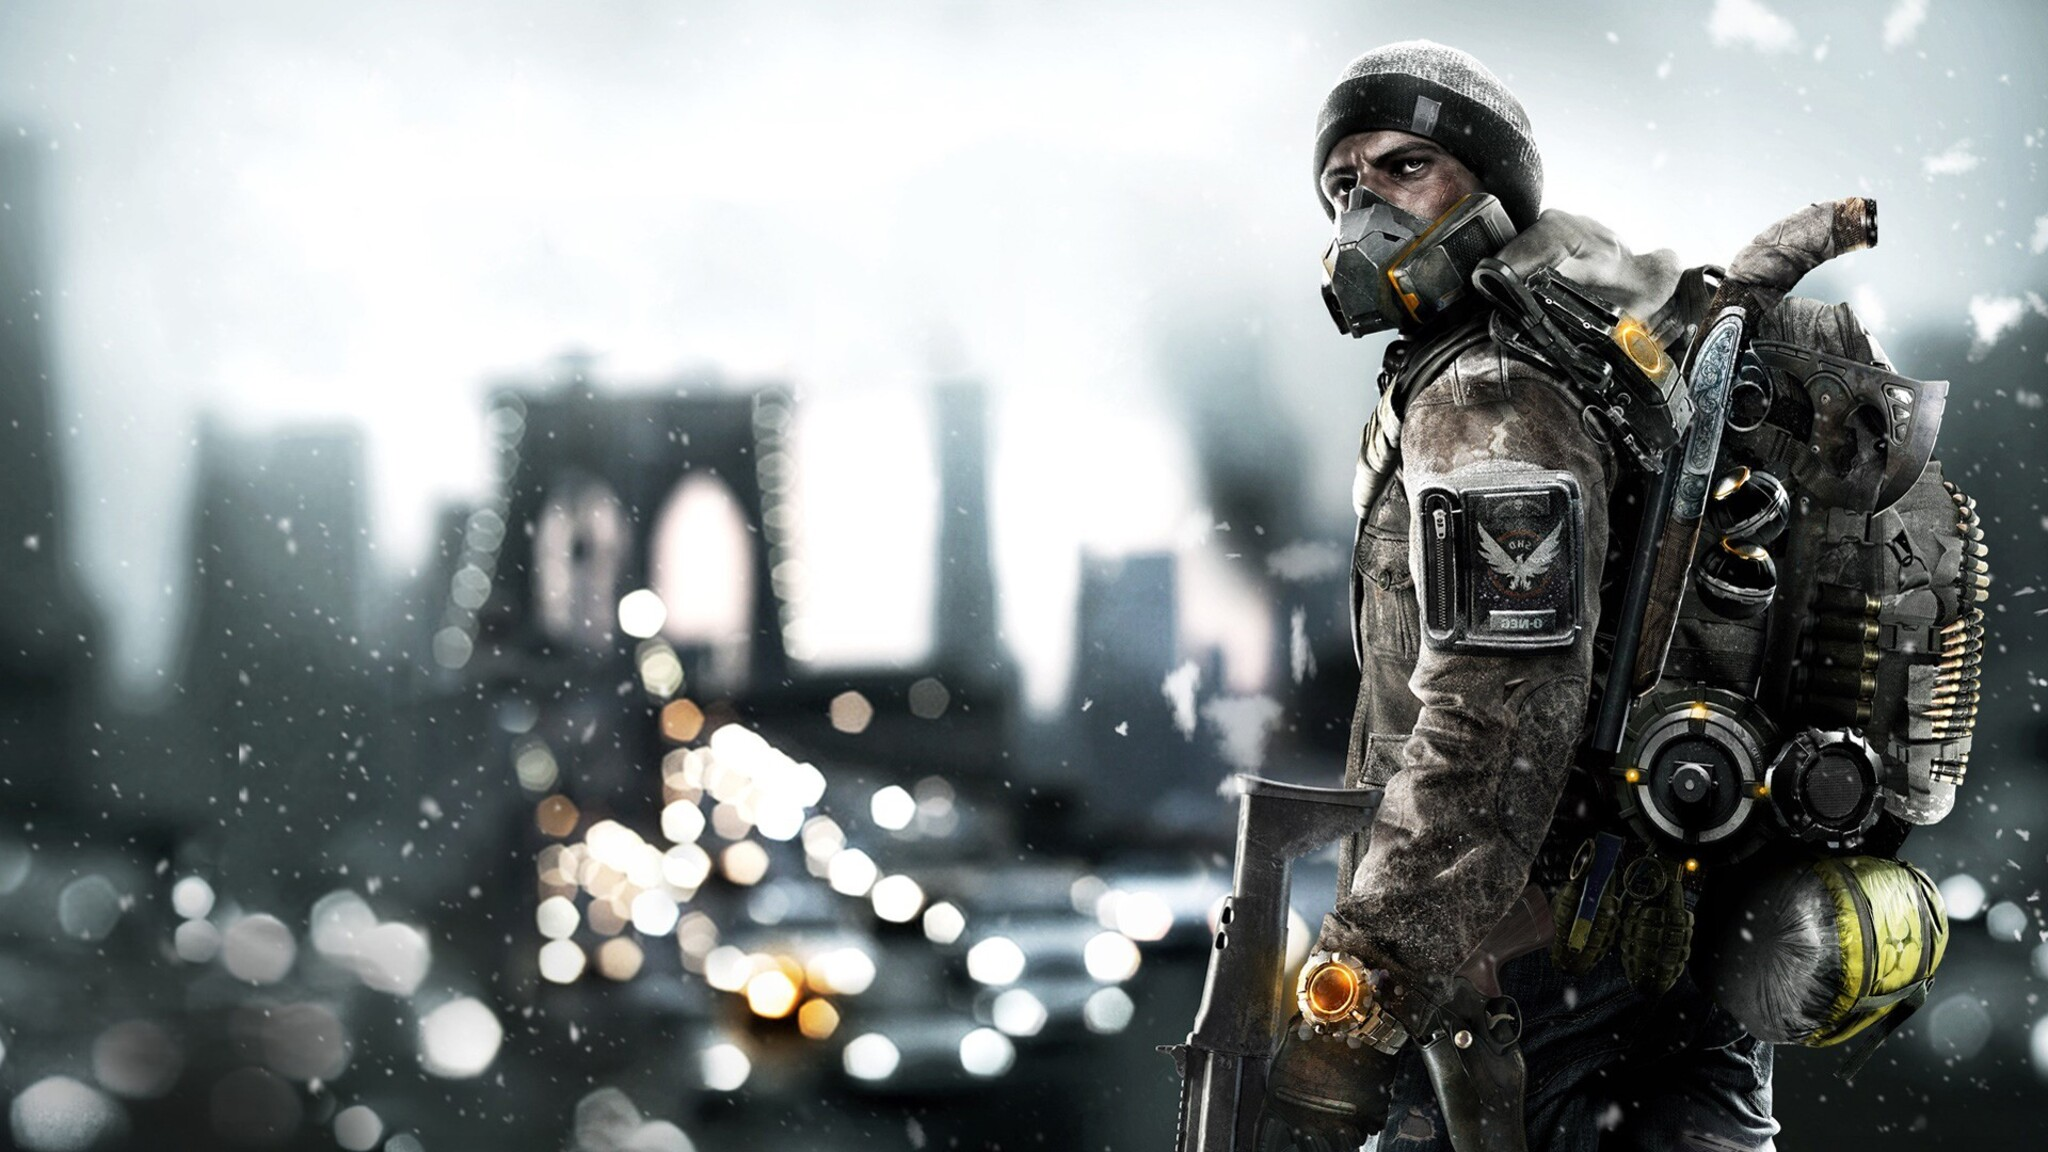 2048x1152 Tom Clancys The Division Season Pass 2048x1152